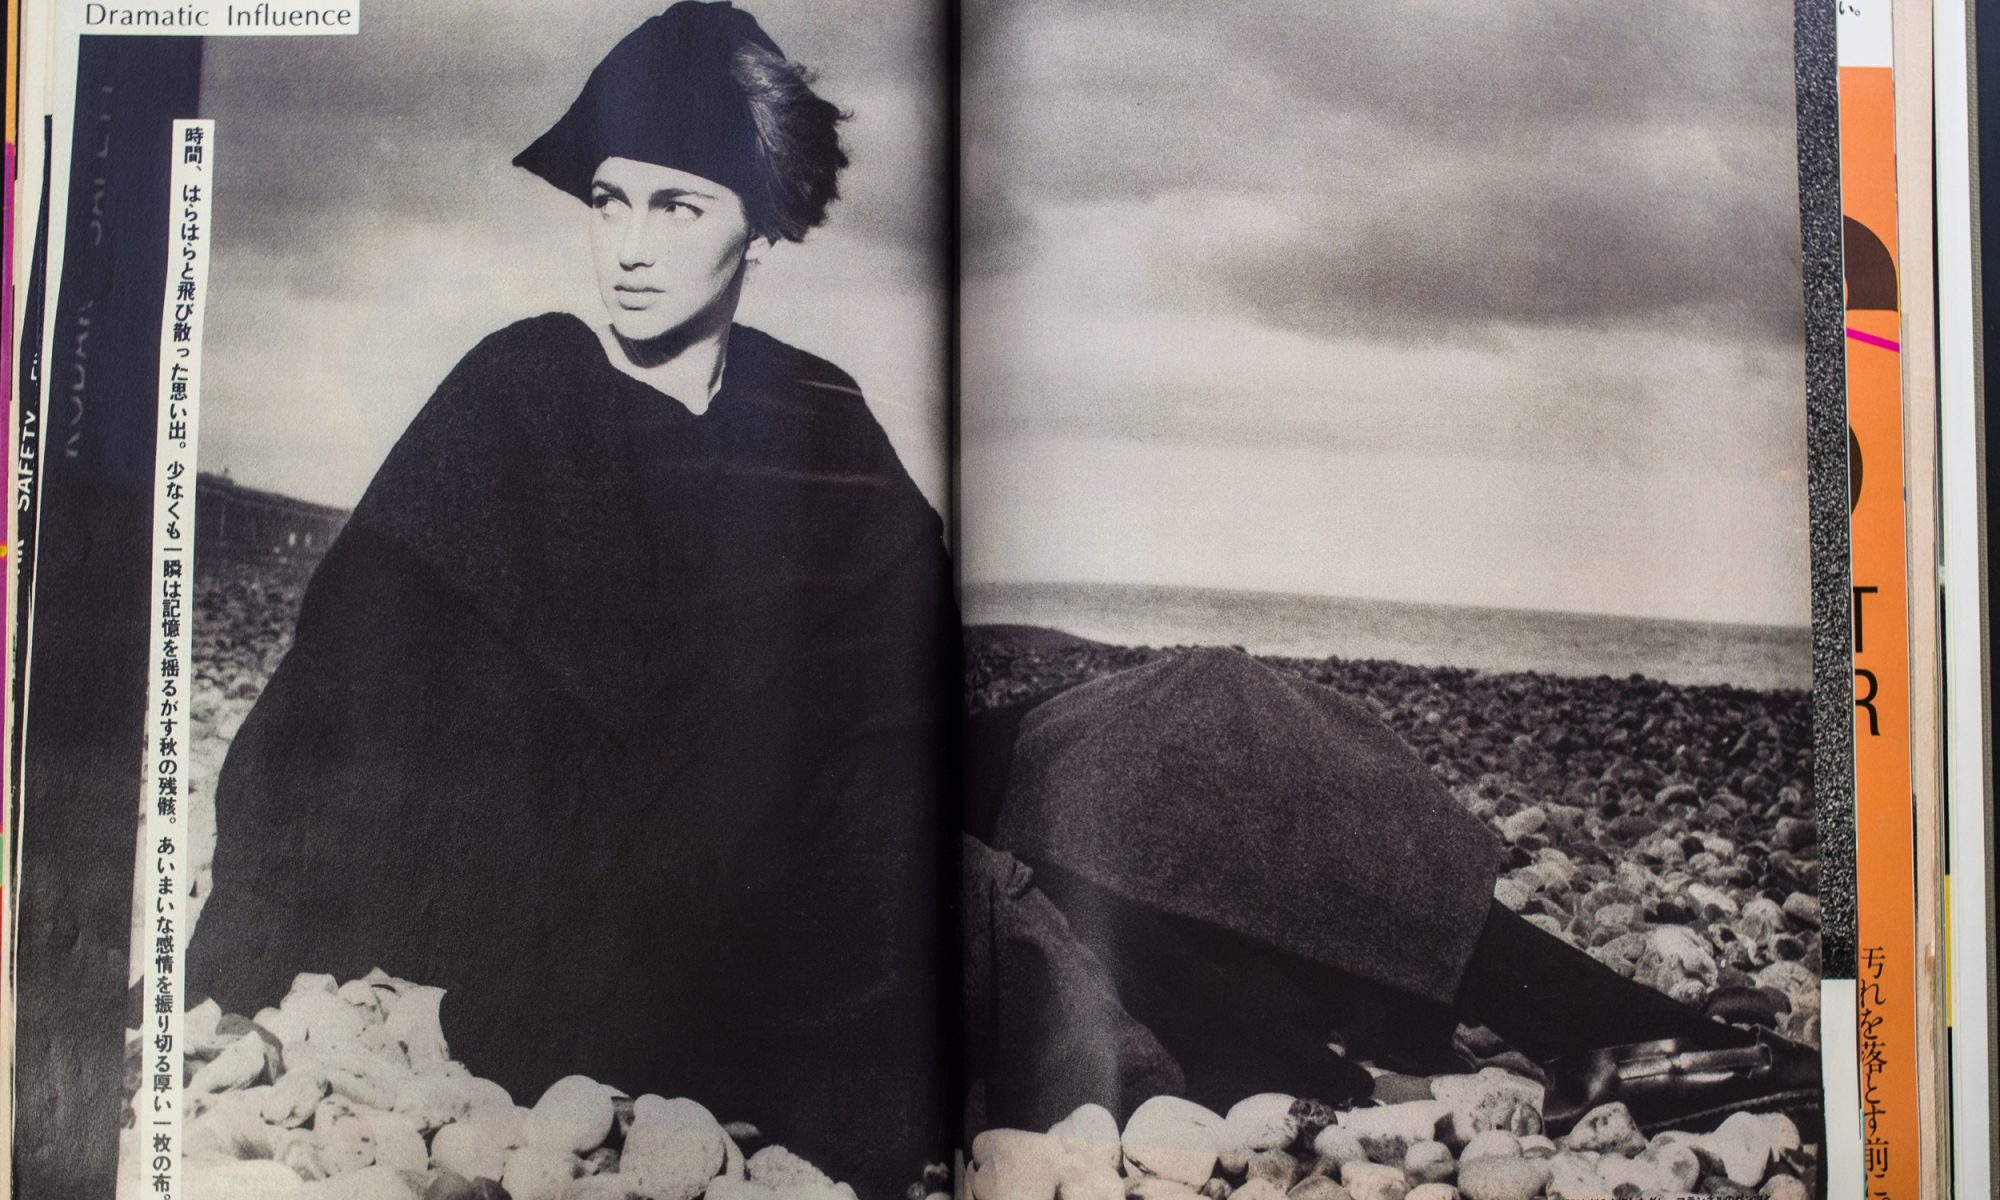 Comme des Garçons editorial from the library at Bunka Fashion College. Image by Liam Leslie for Exploding Fashion.